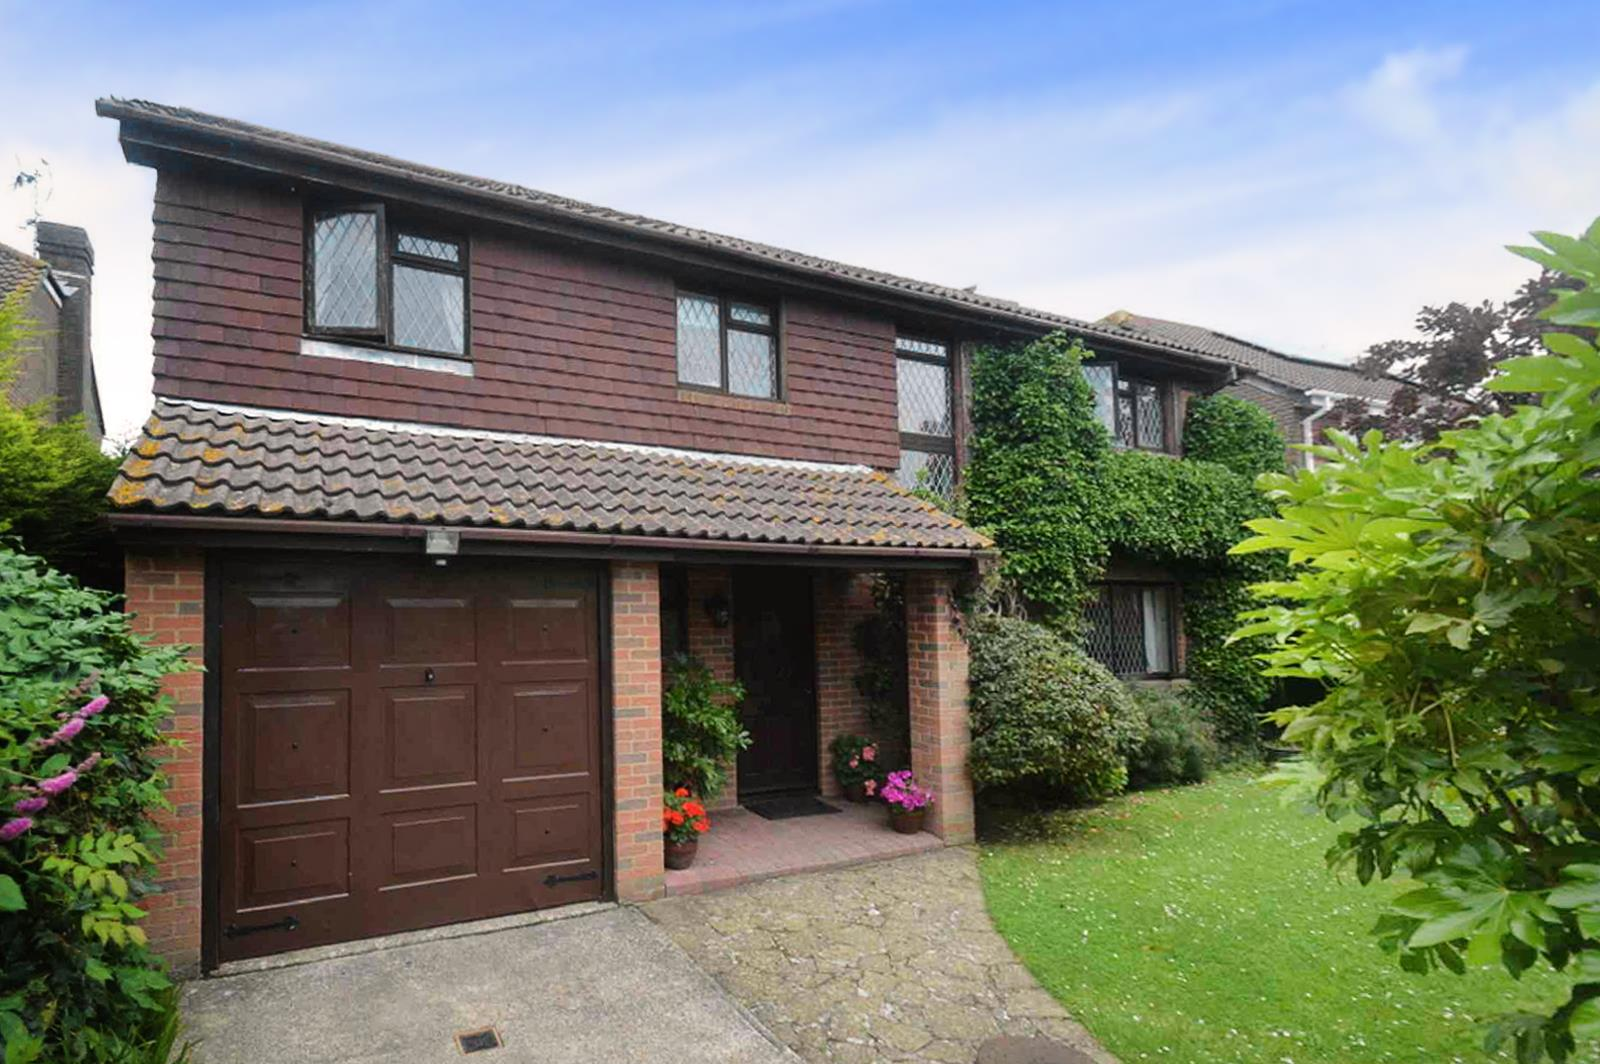 4 Bedrooms Detached House for sale in St. Davids Close, EASTBOURNE